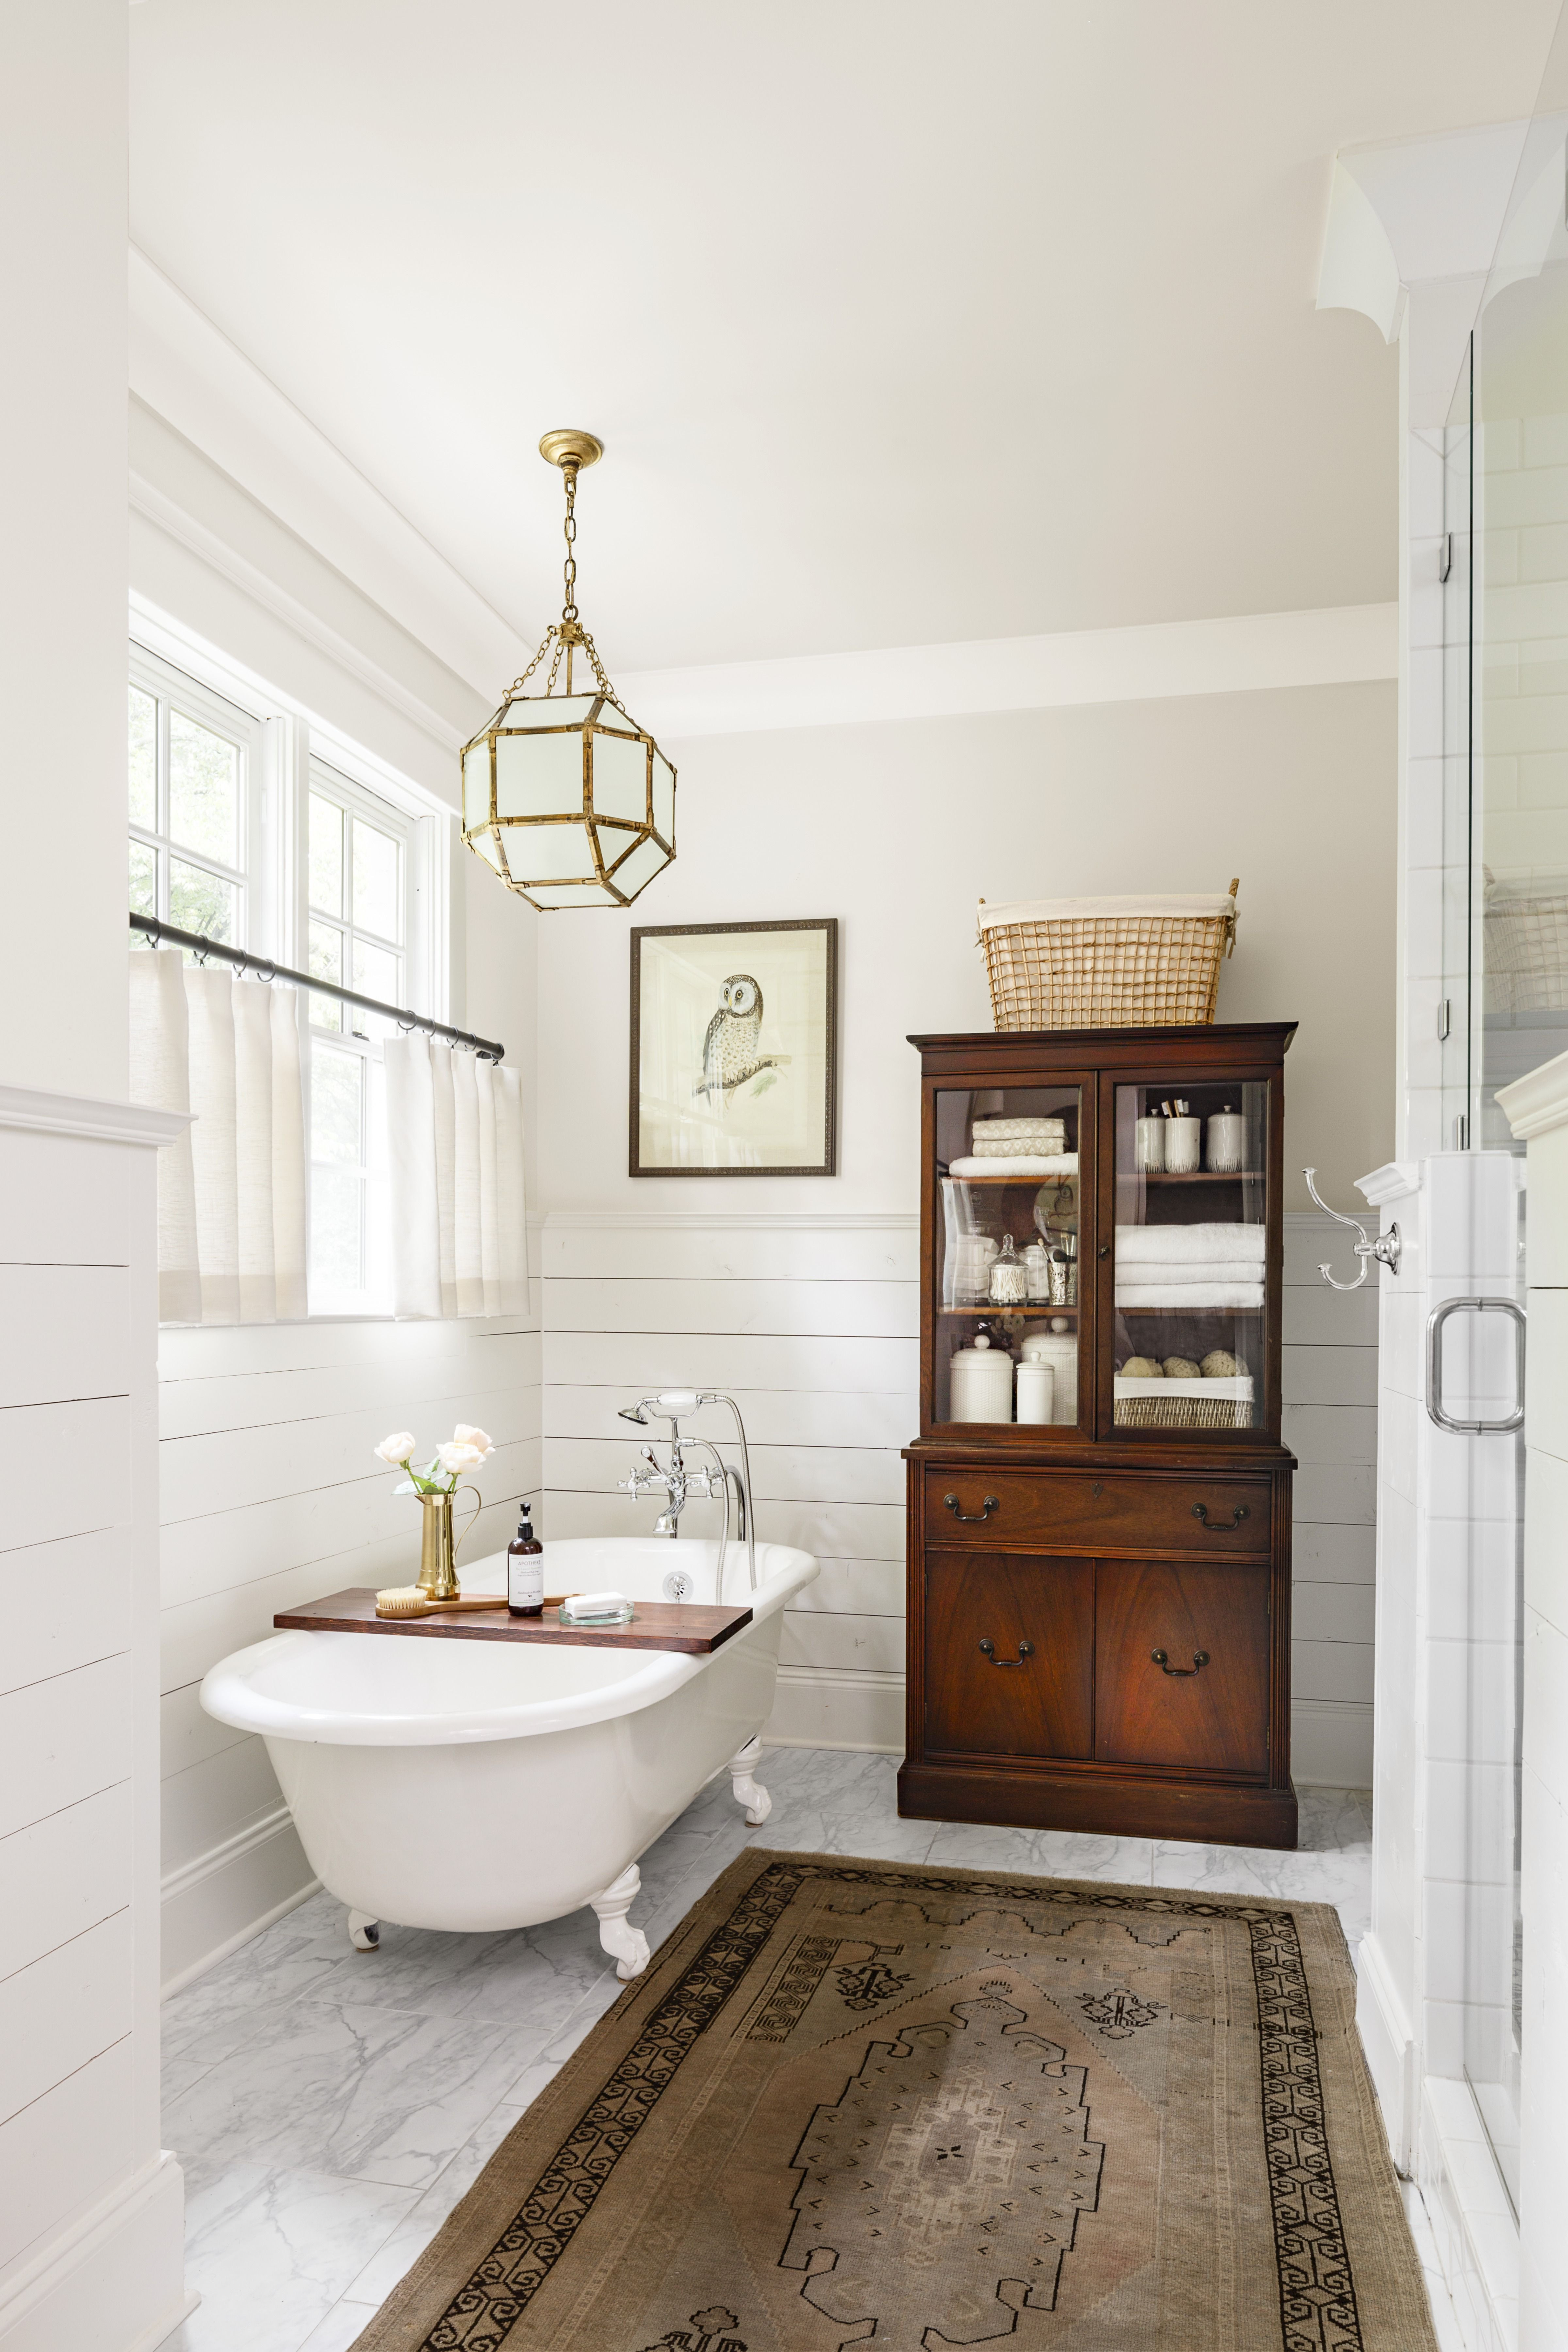 His and Hers Bathroom Decor Inspirational 50 Bathroom Decorating Ideas Of Bathroom Decor